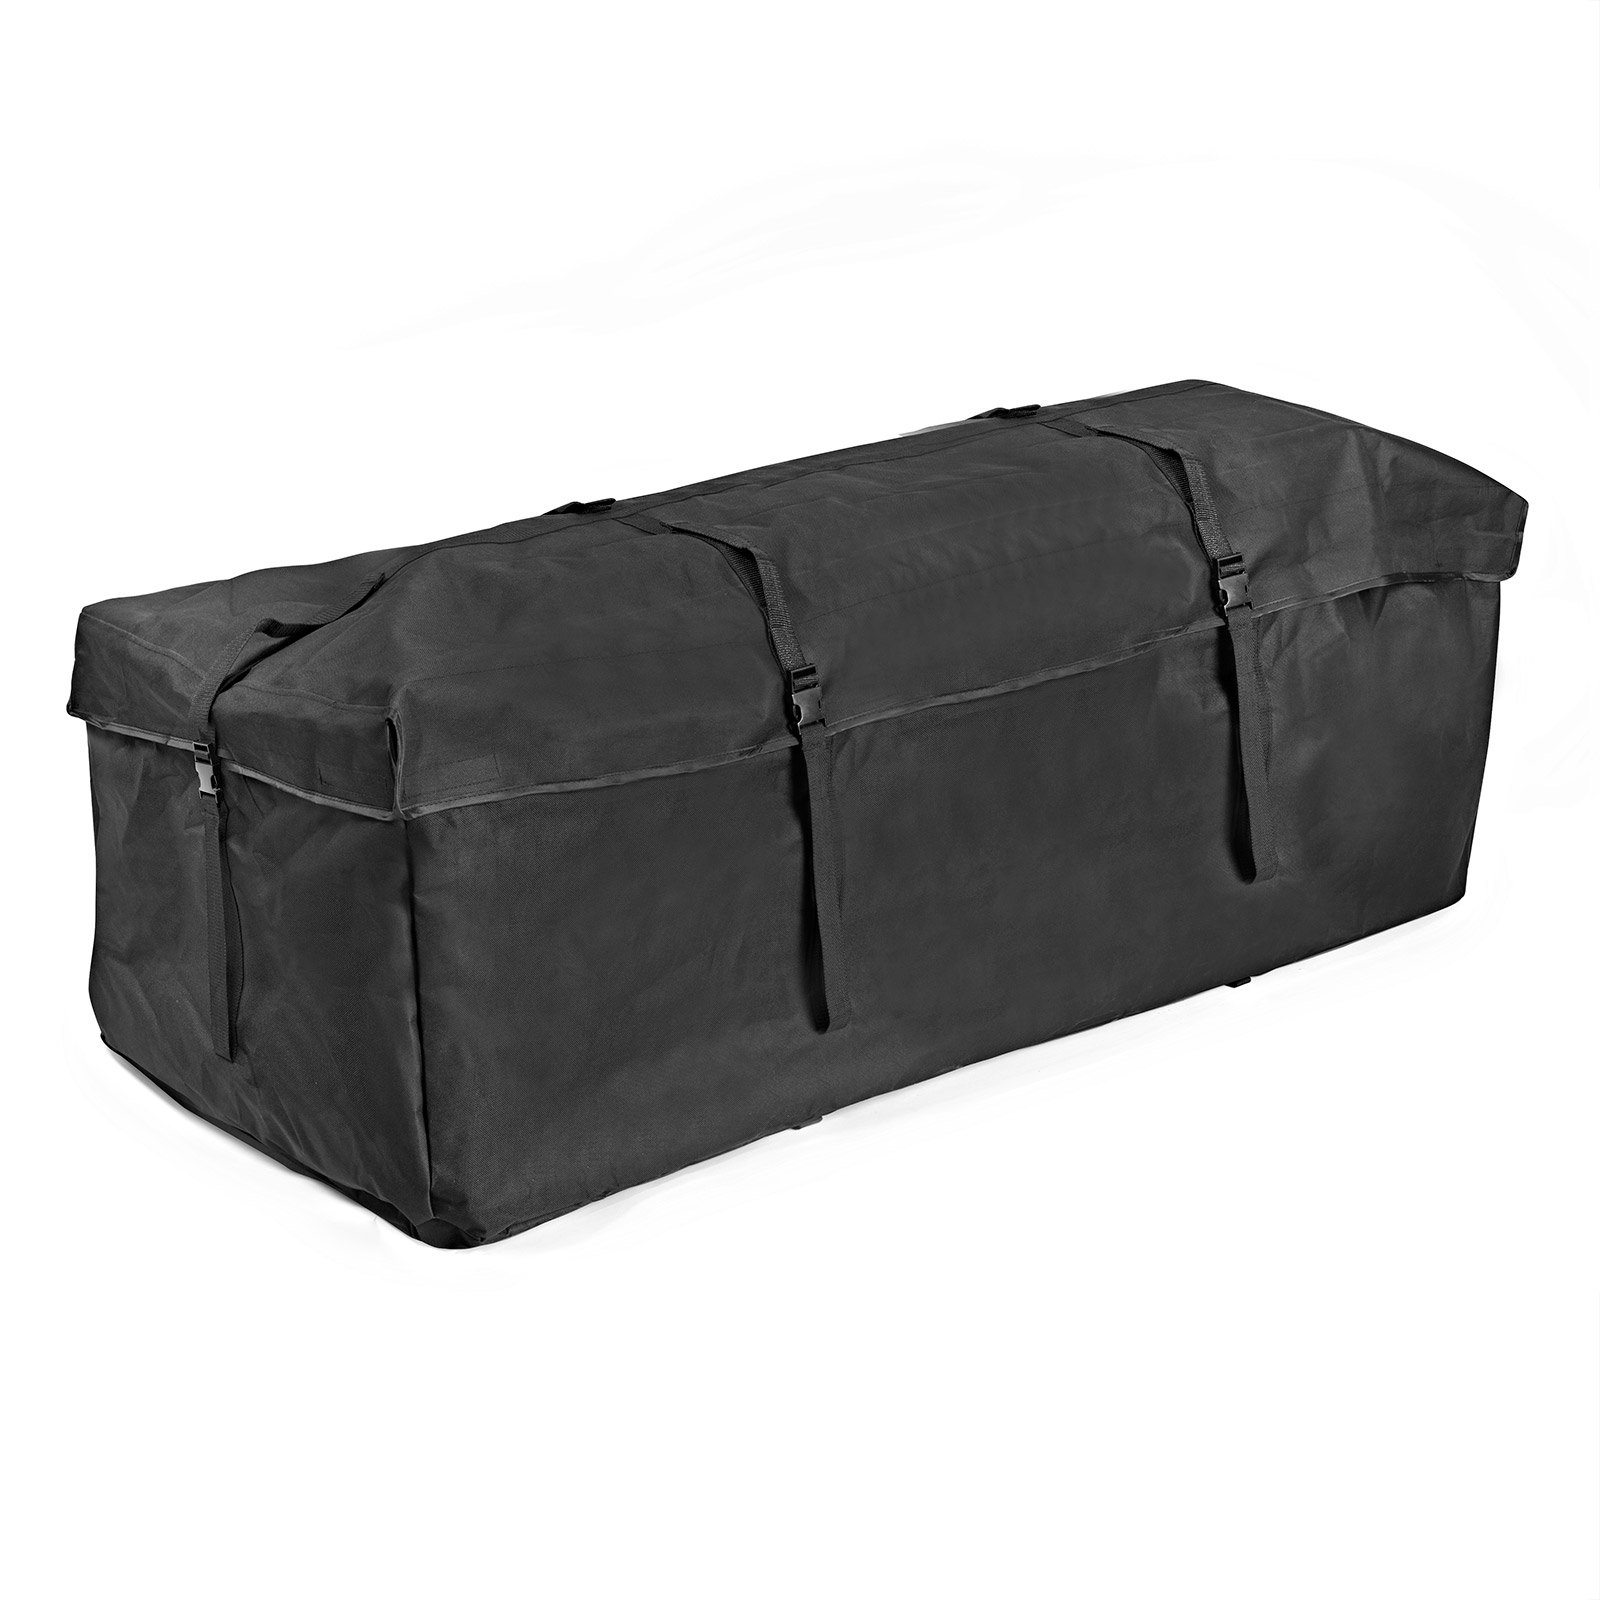 Direct Aftermarket Weather and Water Resistant Cargo Carrier Bag 58'' x 20'' x 19.5''